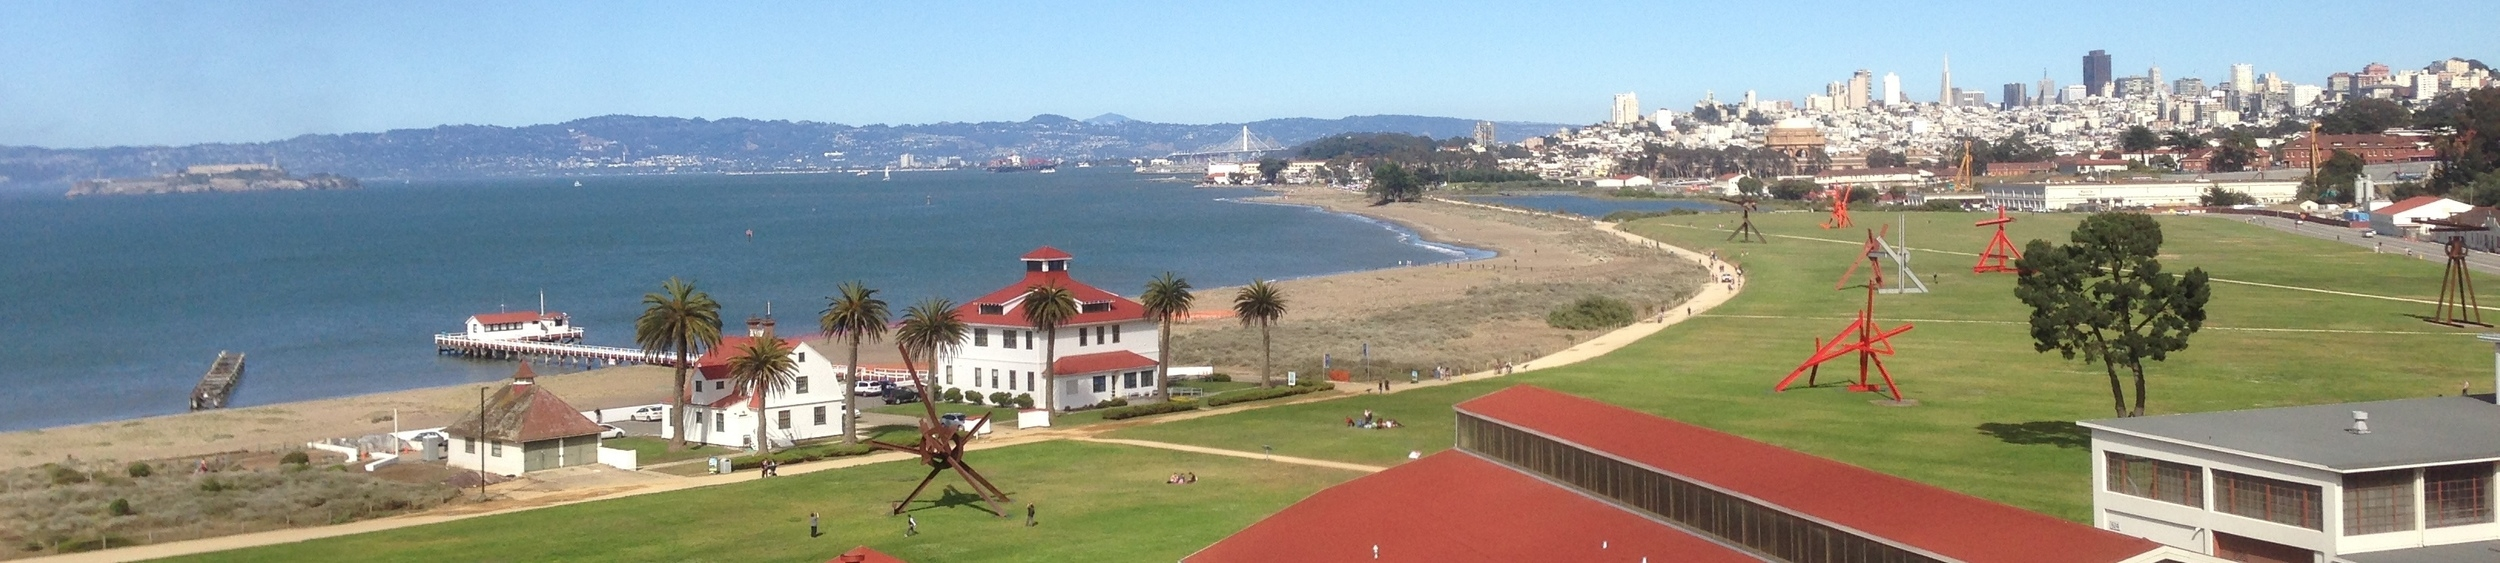 Crissy Field, the Marina, 8 blocks from Dr. Cunningham's office